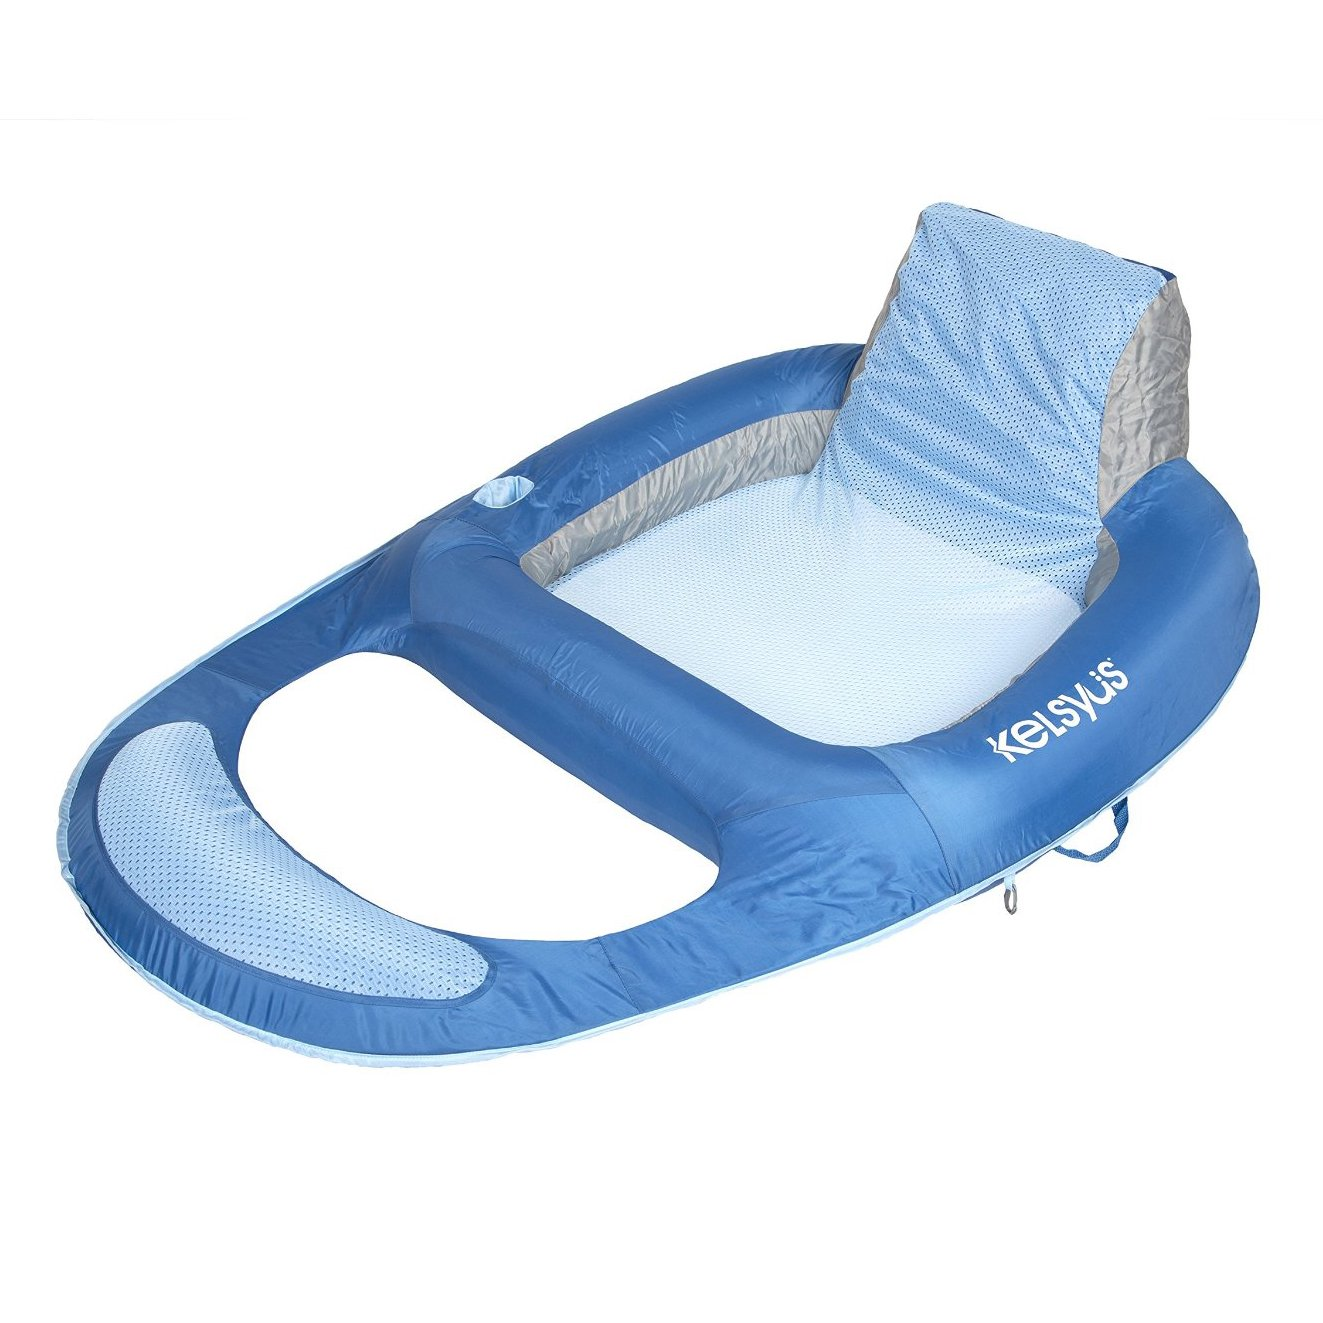 Kelsyus Floating Pool Lounger Inflatable Chair W/ Cup Holder, Blue | 80014